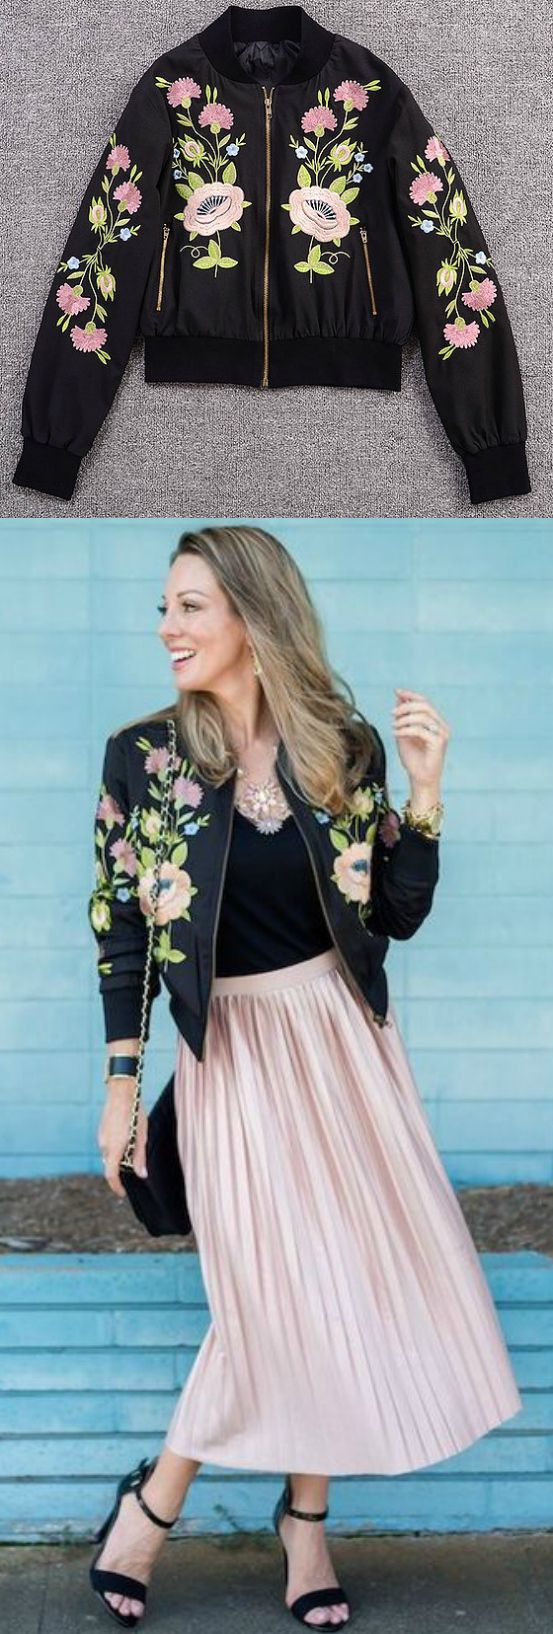 A Floral Embroidery Jacket is now available at $75 from Pasaboho. ❤️ This Fashion Jacket exhibit unique embroidered flowers. ❤️ boho fashion :: gypsy style :: hippie chic :: boho chic :: outfit ideas :: boho clothing :: free spirit :: fashion trend :: flo